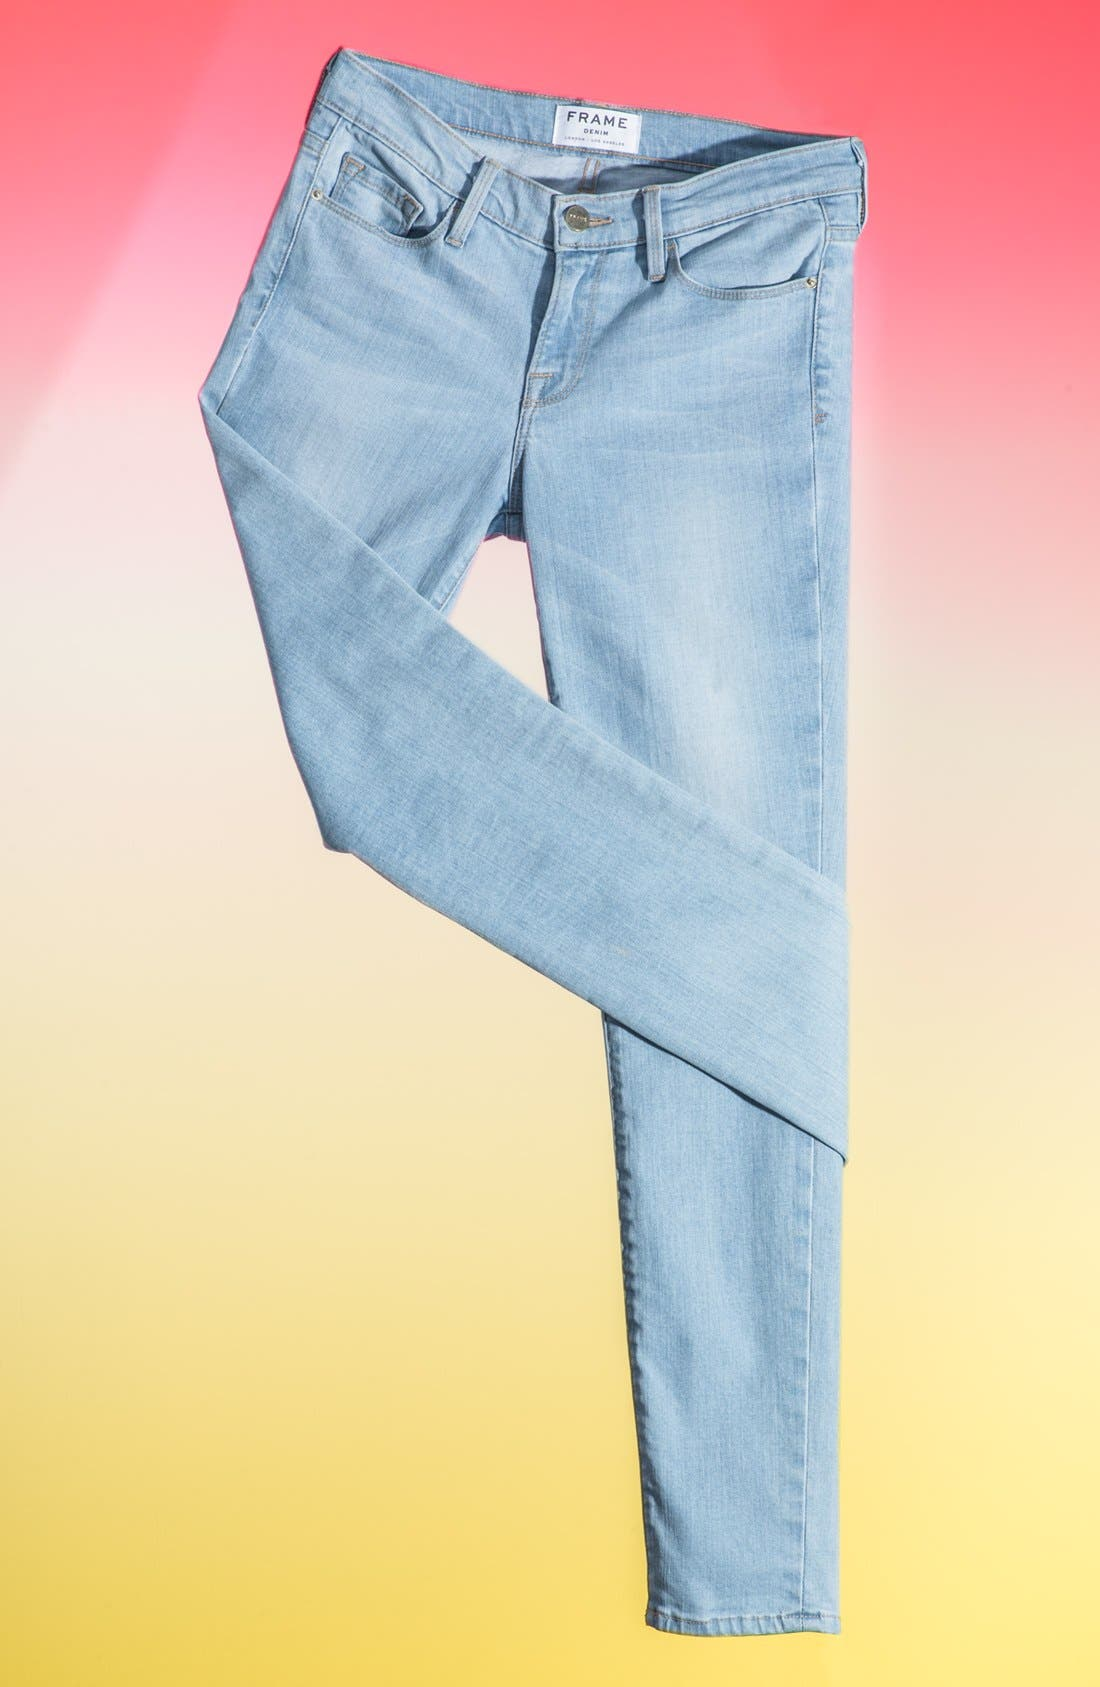 Alternate Image 1 Selected - Frame Denim 'Le Skinny de Jeanne' Jeans (Redchurch Street)